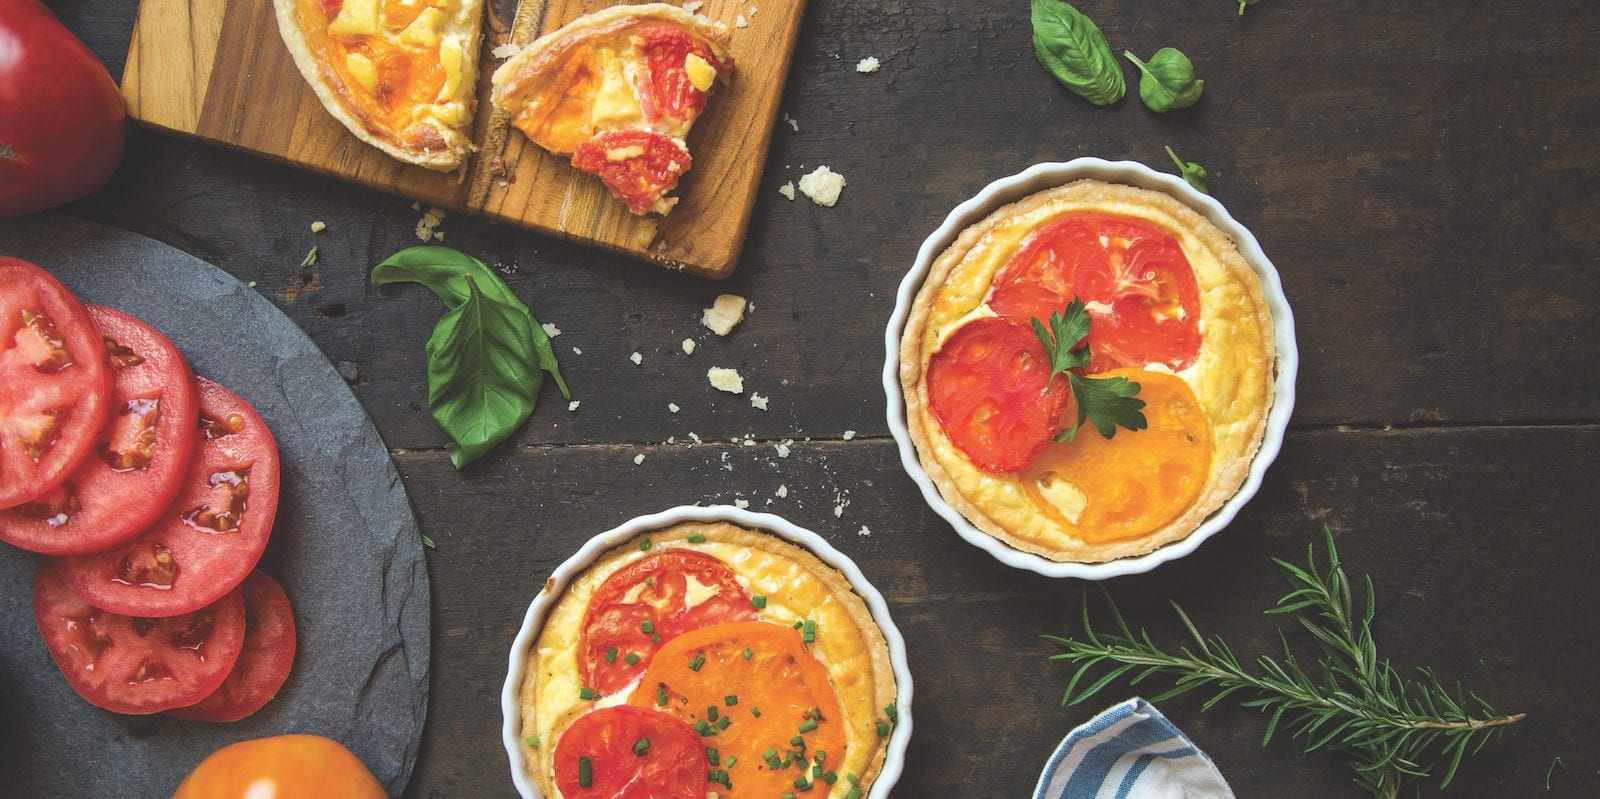 The Culinary Class: How to Make Tomato Pie